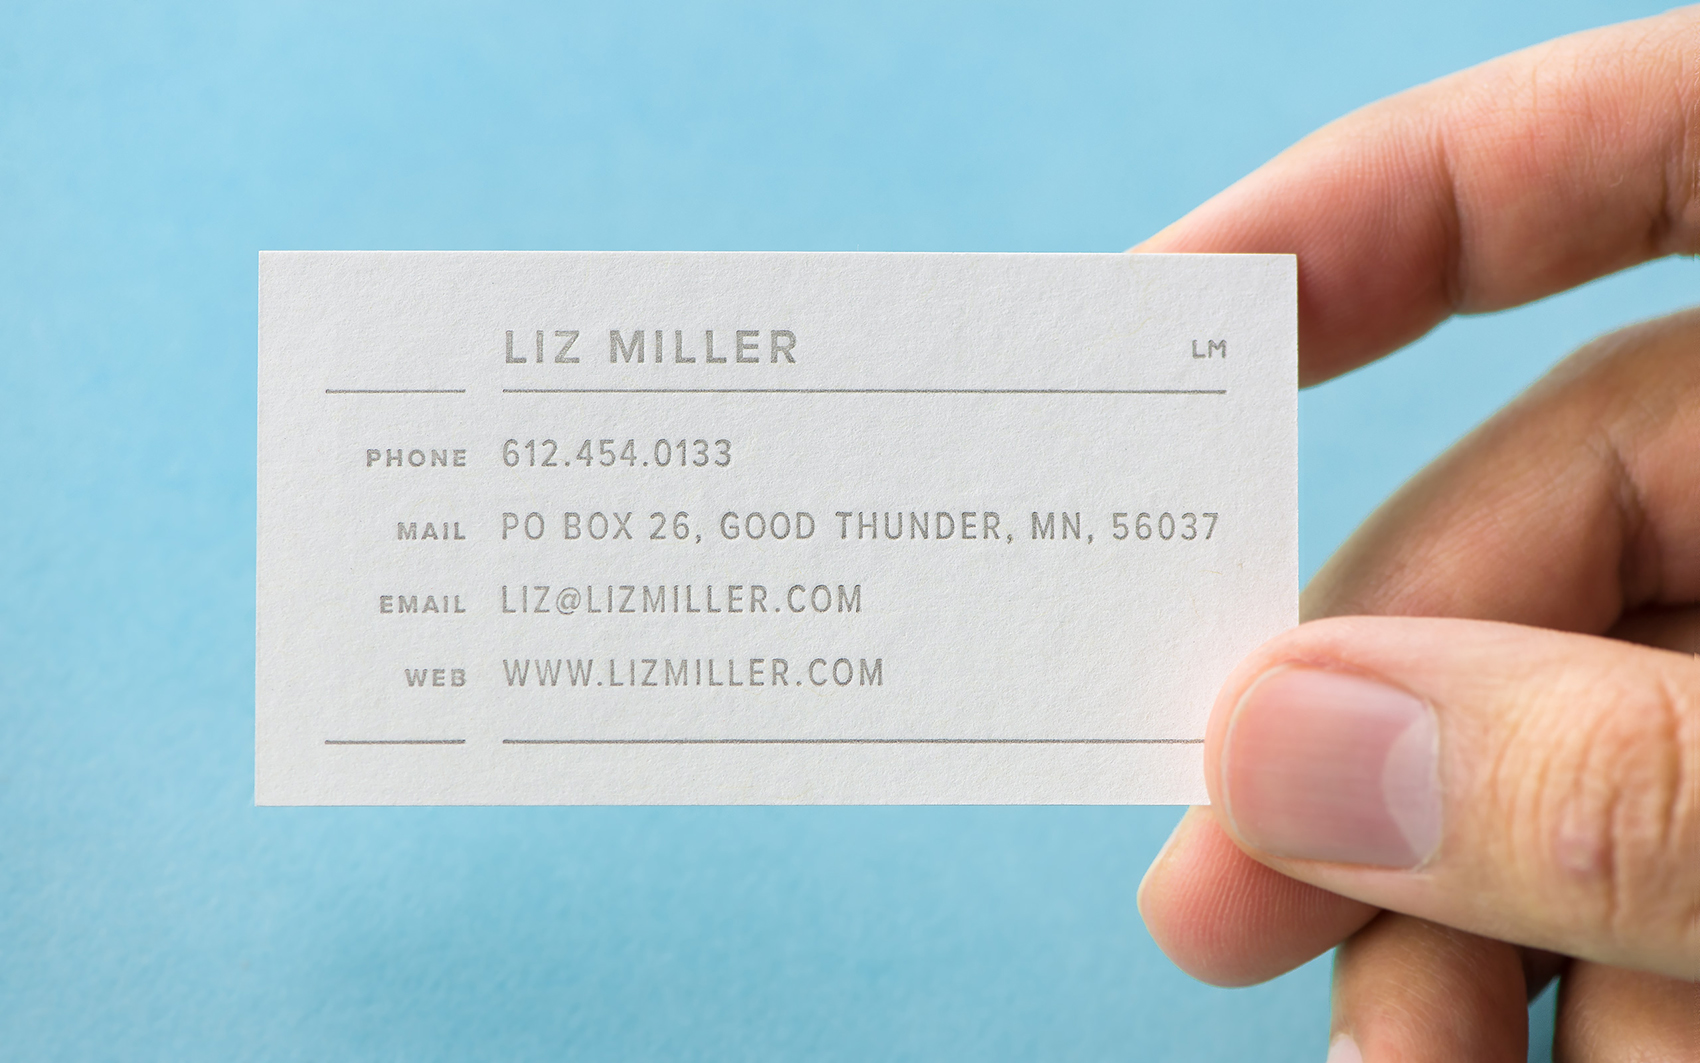 MOH_Blog_LizMillerIdentity_UnifyWithTexture_04.jpg